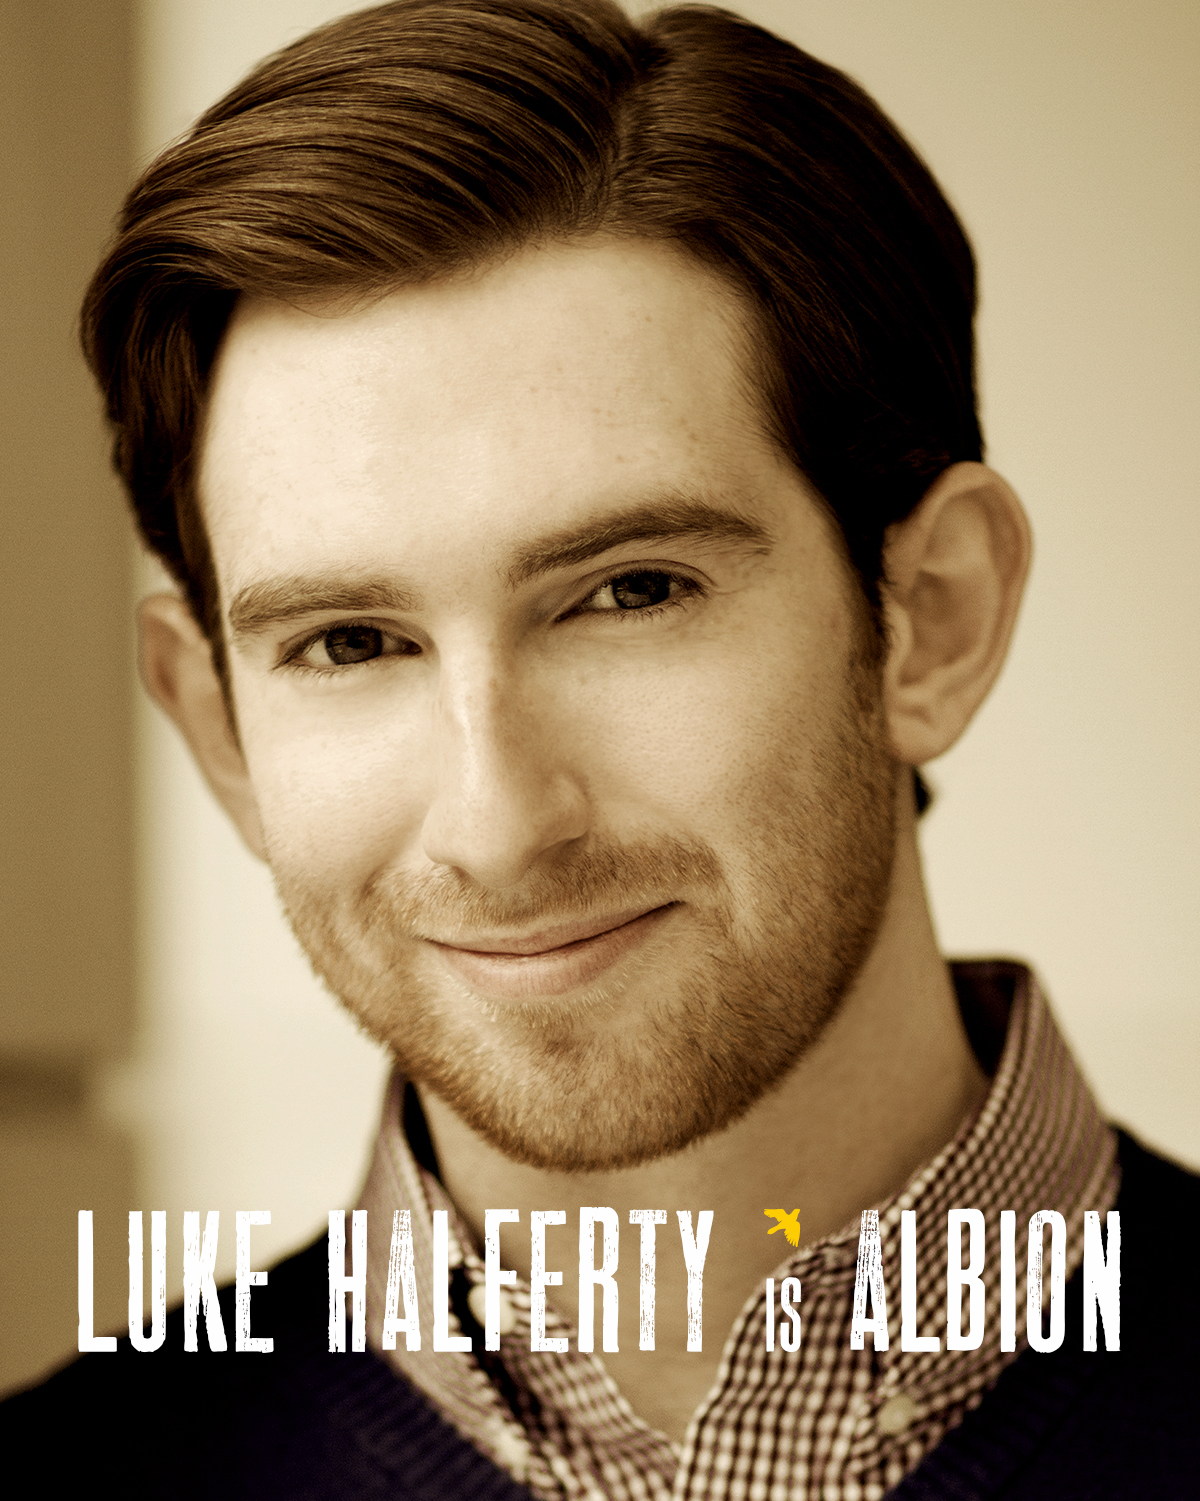 LUKE HALFERTY  (Albion Freeman )  is thrilled to be making his WVPT debut! A native Pittsburgher, Luke has recently performed with Pittsburgh CLO ( The 39 Steps, First Date ,  Titanic, Brigadoon, The Full Monty,   A Christmas Carol ), Pittsburgh Public Theater ( Hamlet ), PICT Classic Theatre ( Merchant of Venice, The 'Scottish Play' ,  The Crucifer of Blood ), The REP ( Of Mice and Men ), St. Vincent Summer Theatre ( Jeeves In Bloom, Too Many  Cooks), and more. BFA from Point Park University. Proud member of AEA. Special thanks to friends and family for love and support through it all.  www.lukehalferty.com